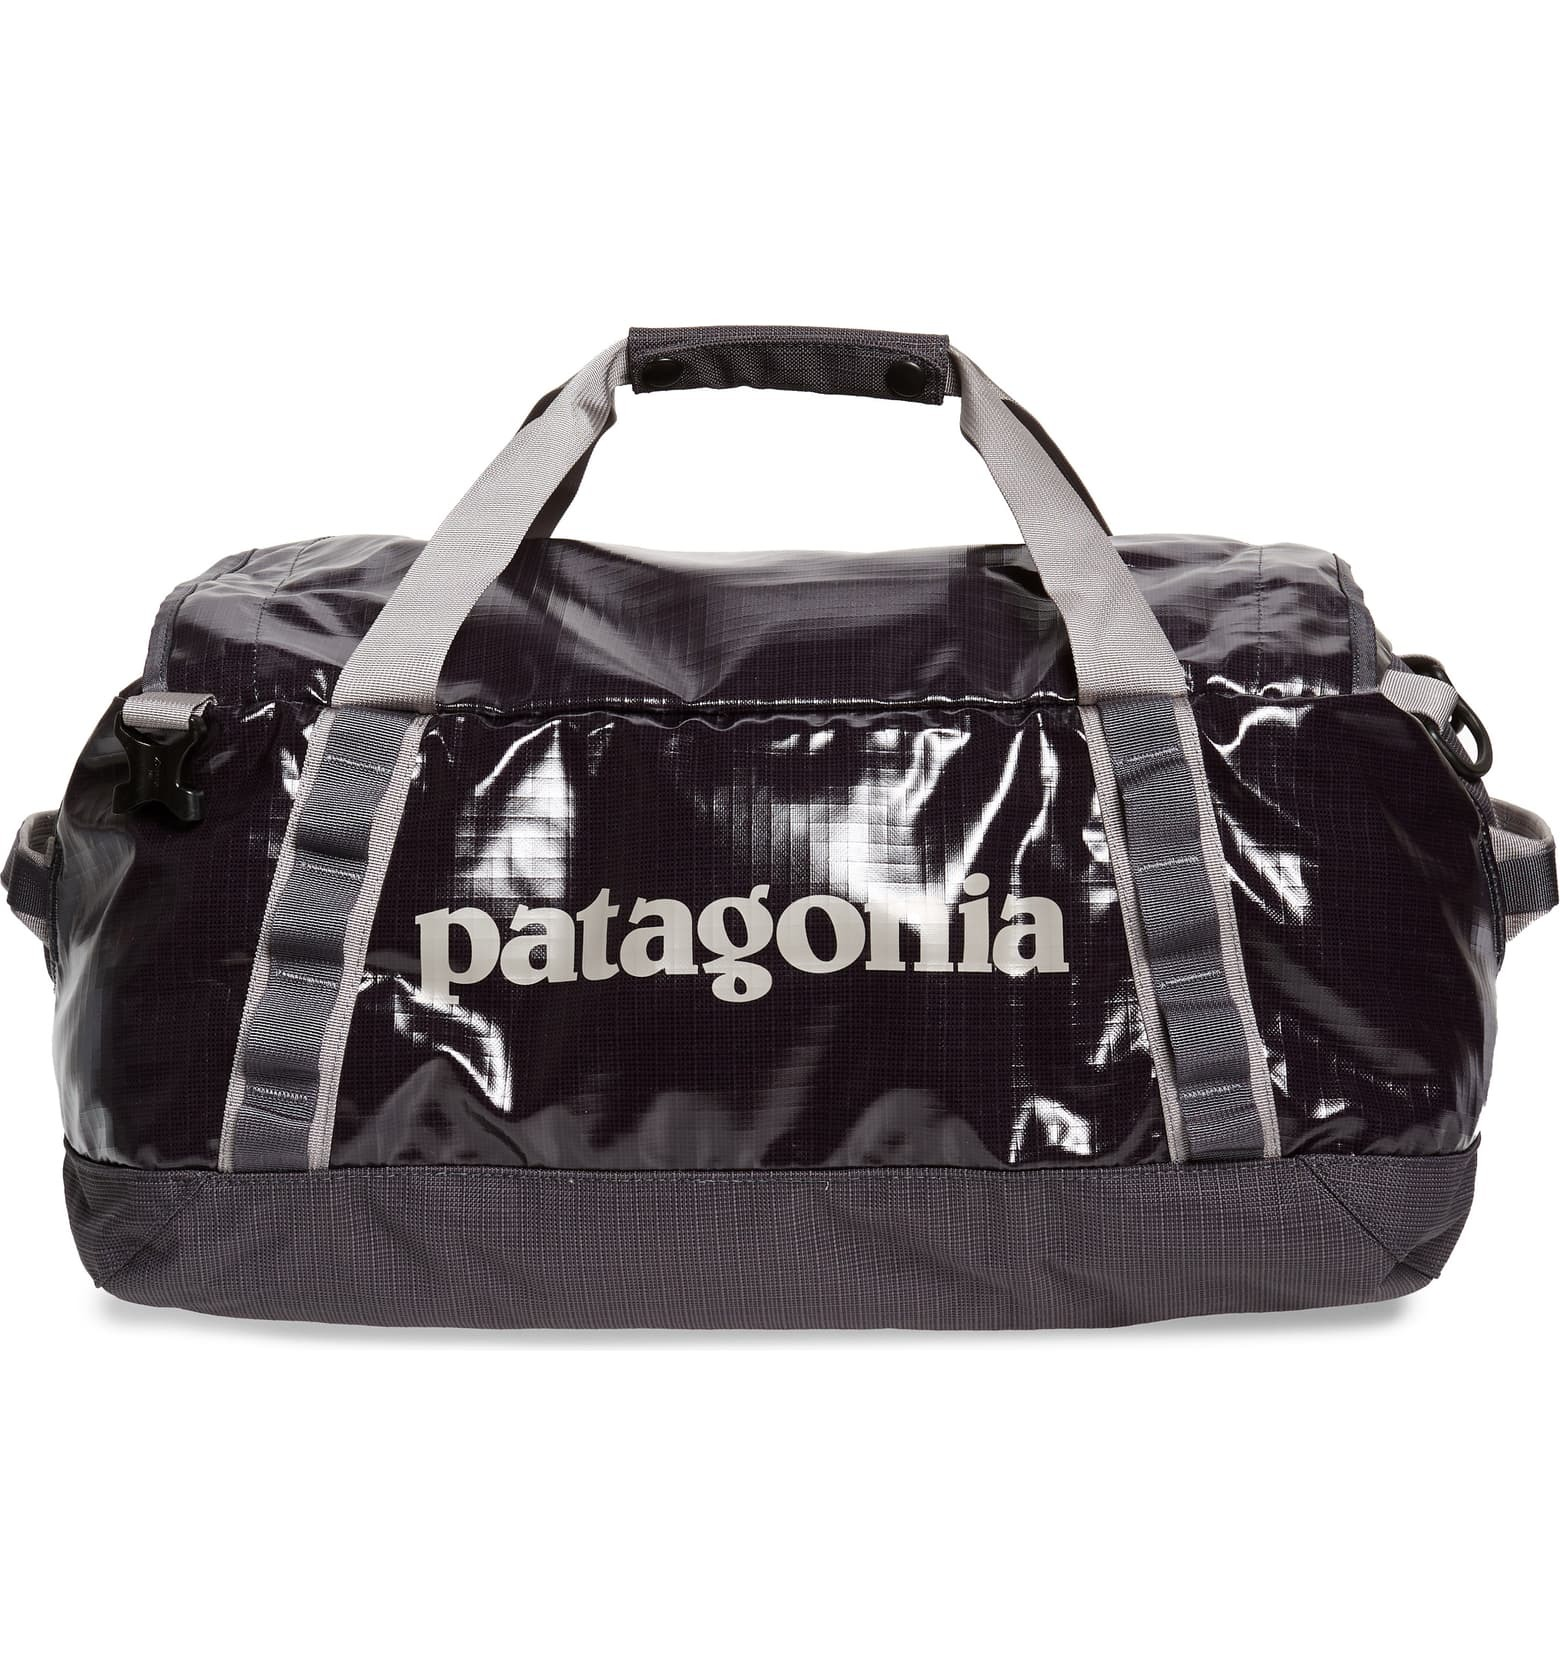 blue waterproof duffel gym bag